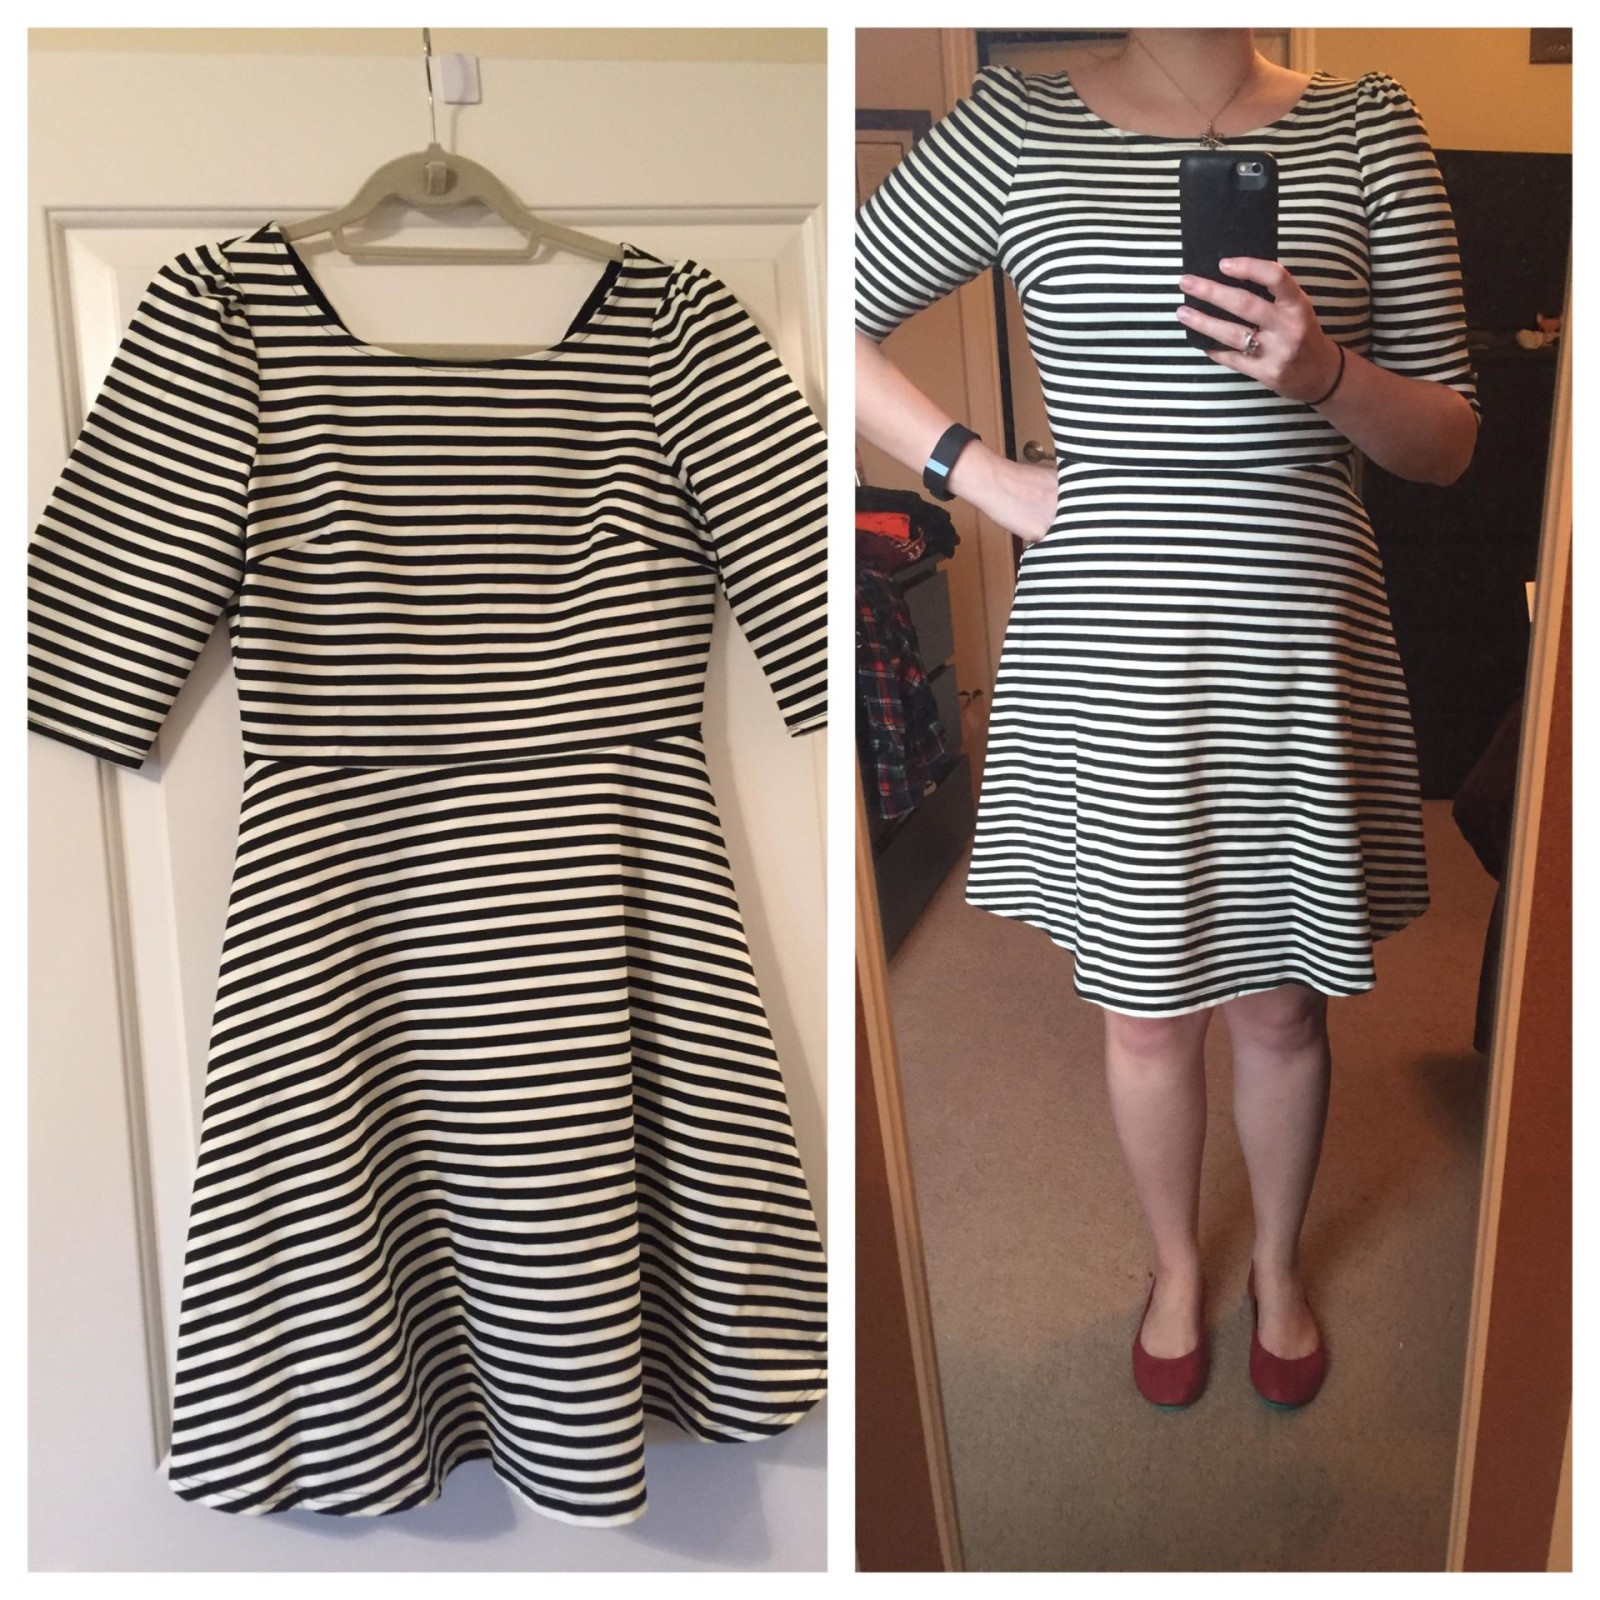 Pixley Kathy Striped Fit & Flare Dress